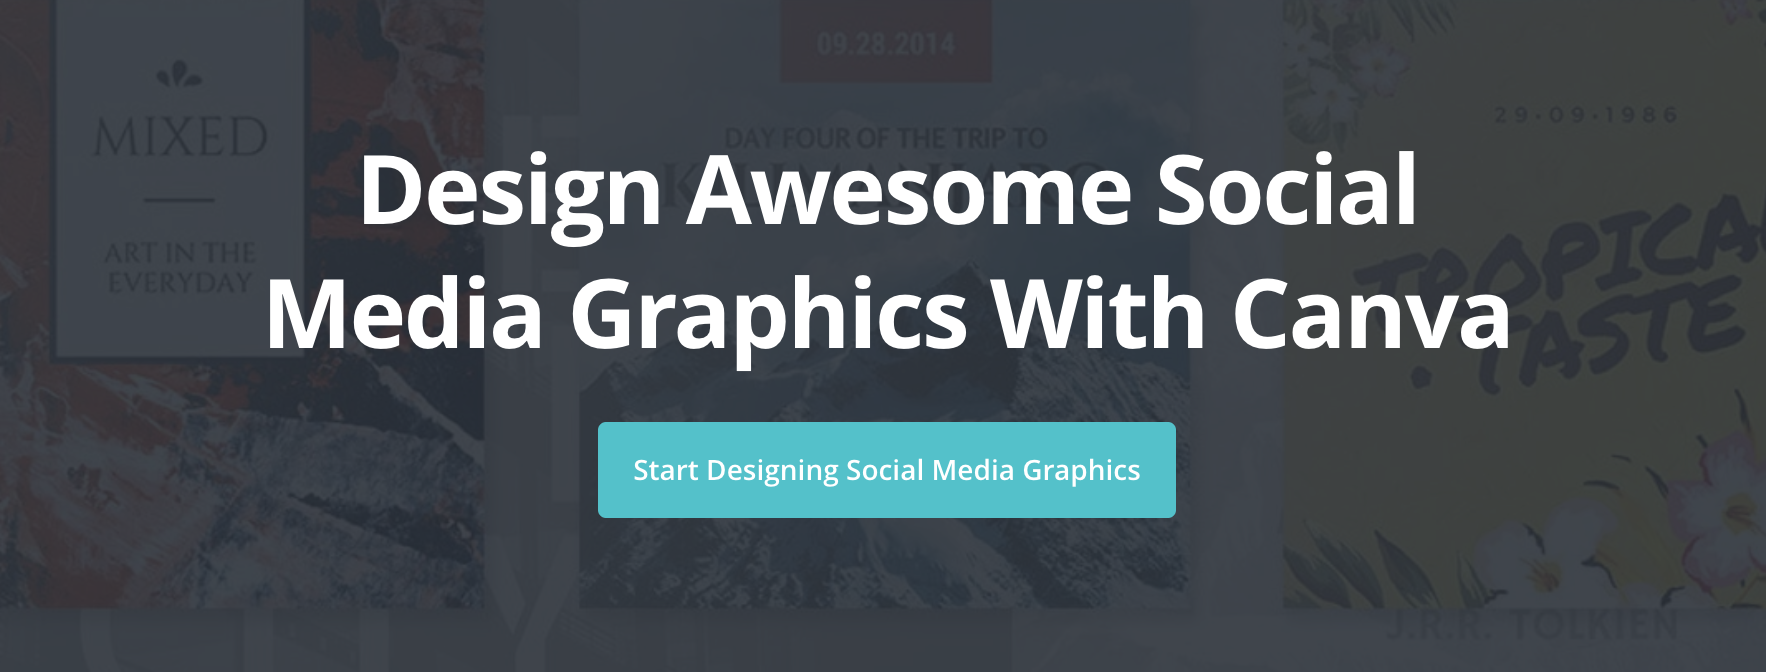 canva social media graphics tool